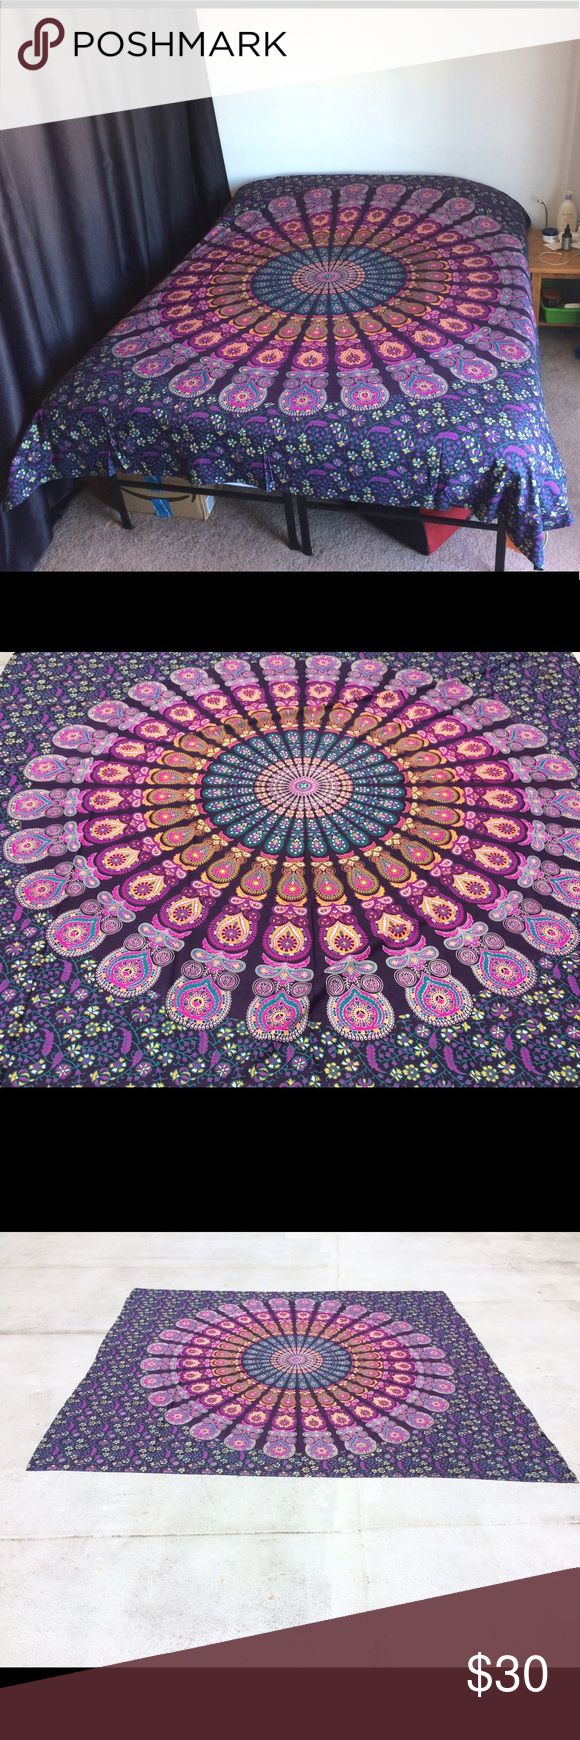 Bed spread bed sheet wall hanging tapestry mandala Wall hanging Bed Couch Cover   This beautiful couch cover/bed spread is hand screen printed on cotton fabric. Can be used a bedspread, Bed Sheets, couch spread, wall hanging or celling decoration. It will look great indoor or outdoor for little picnic or tipi for sleepover parties and music festivals.  Size: Queen bed   Material : 100% Cotton  Wash: Cold hand wash or Machine Delicates cycle & Air dry Other